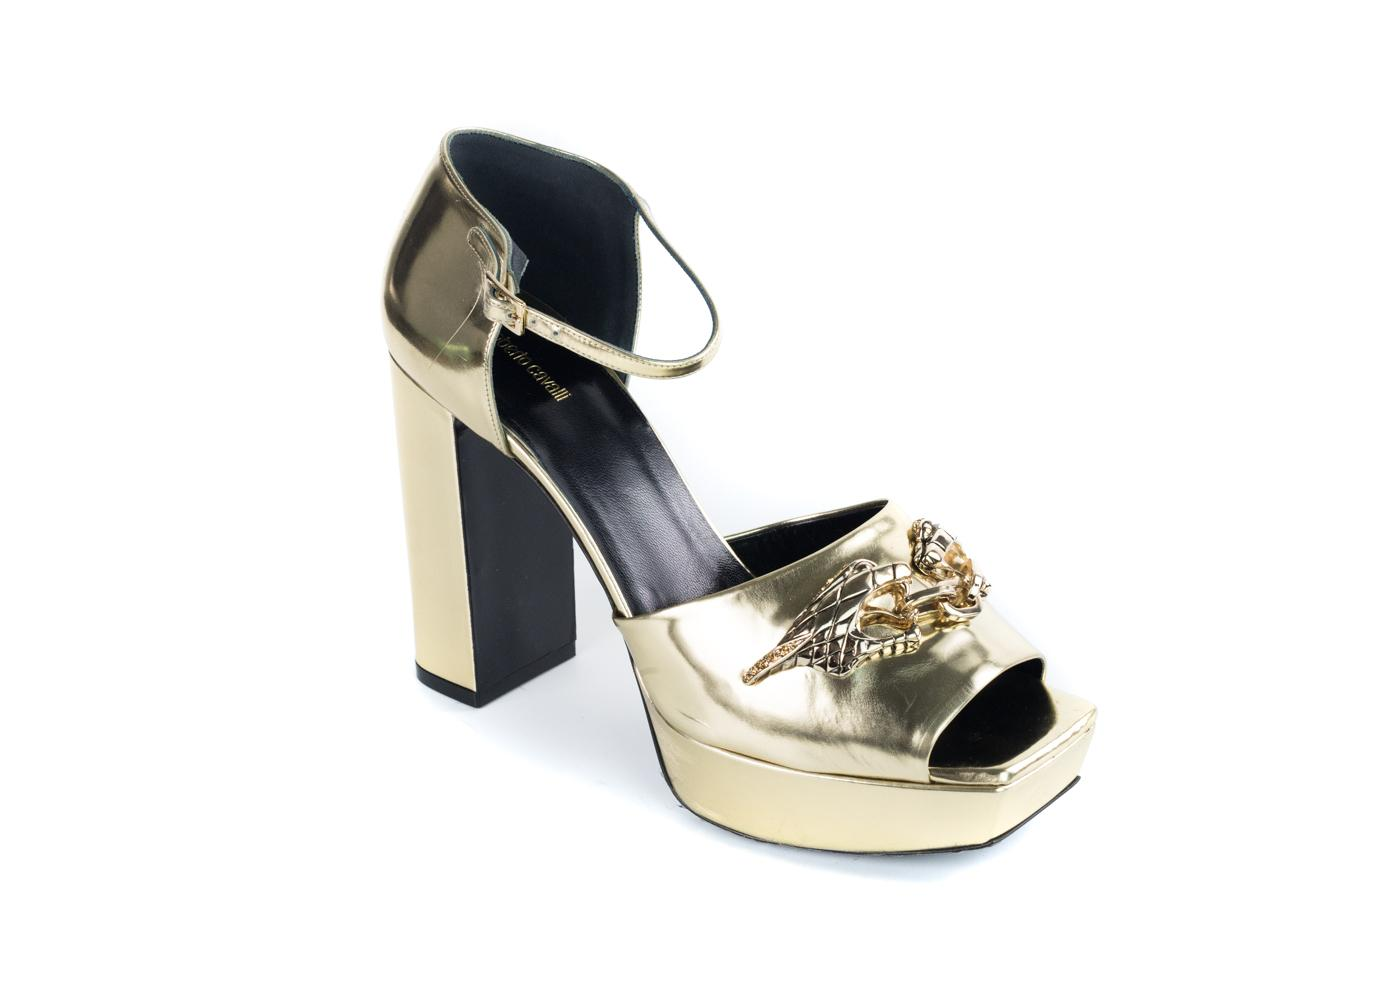 Roberto Cavalli Metallic Platform Pumps sale shop for outlet affordable outlet 2015 discount cheap online low price fee shipping 2cqeXsl